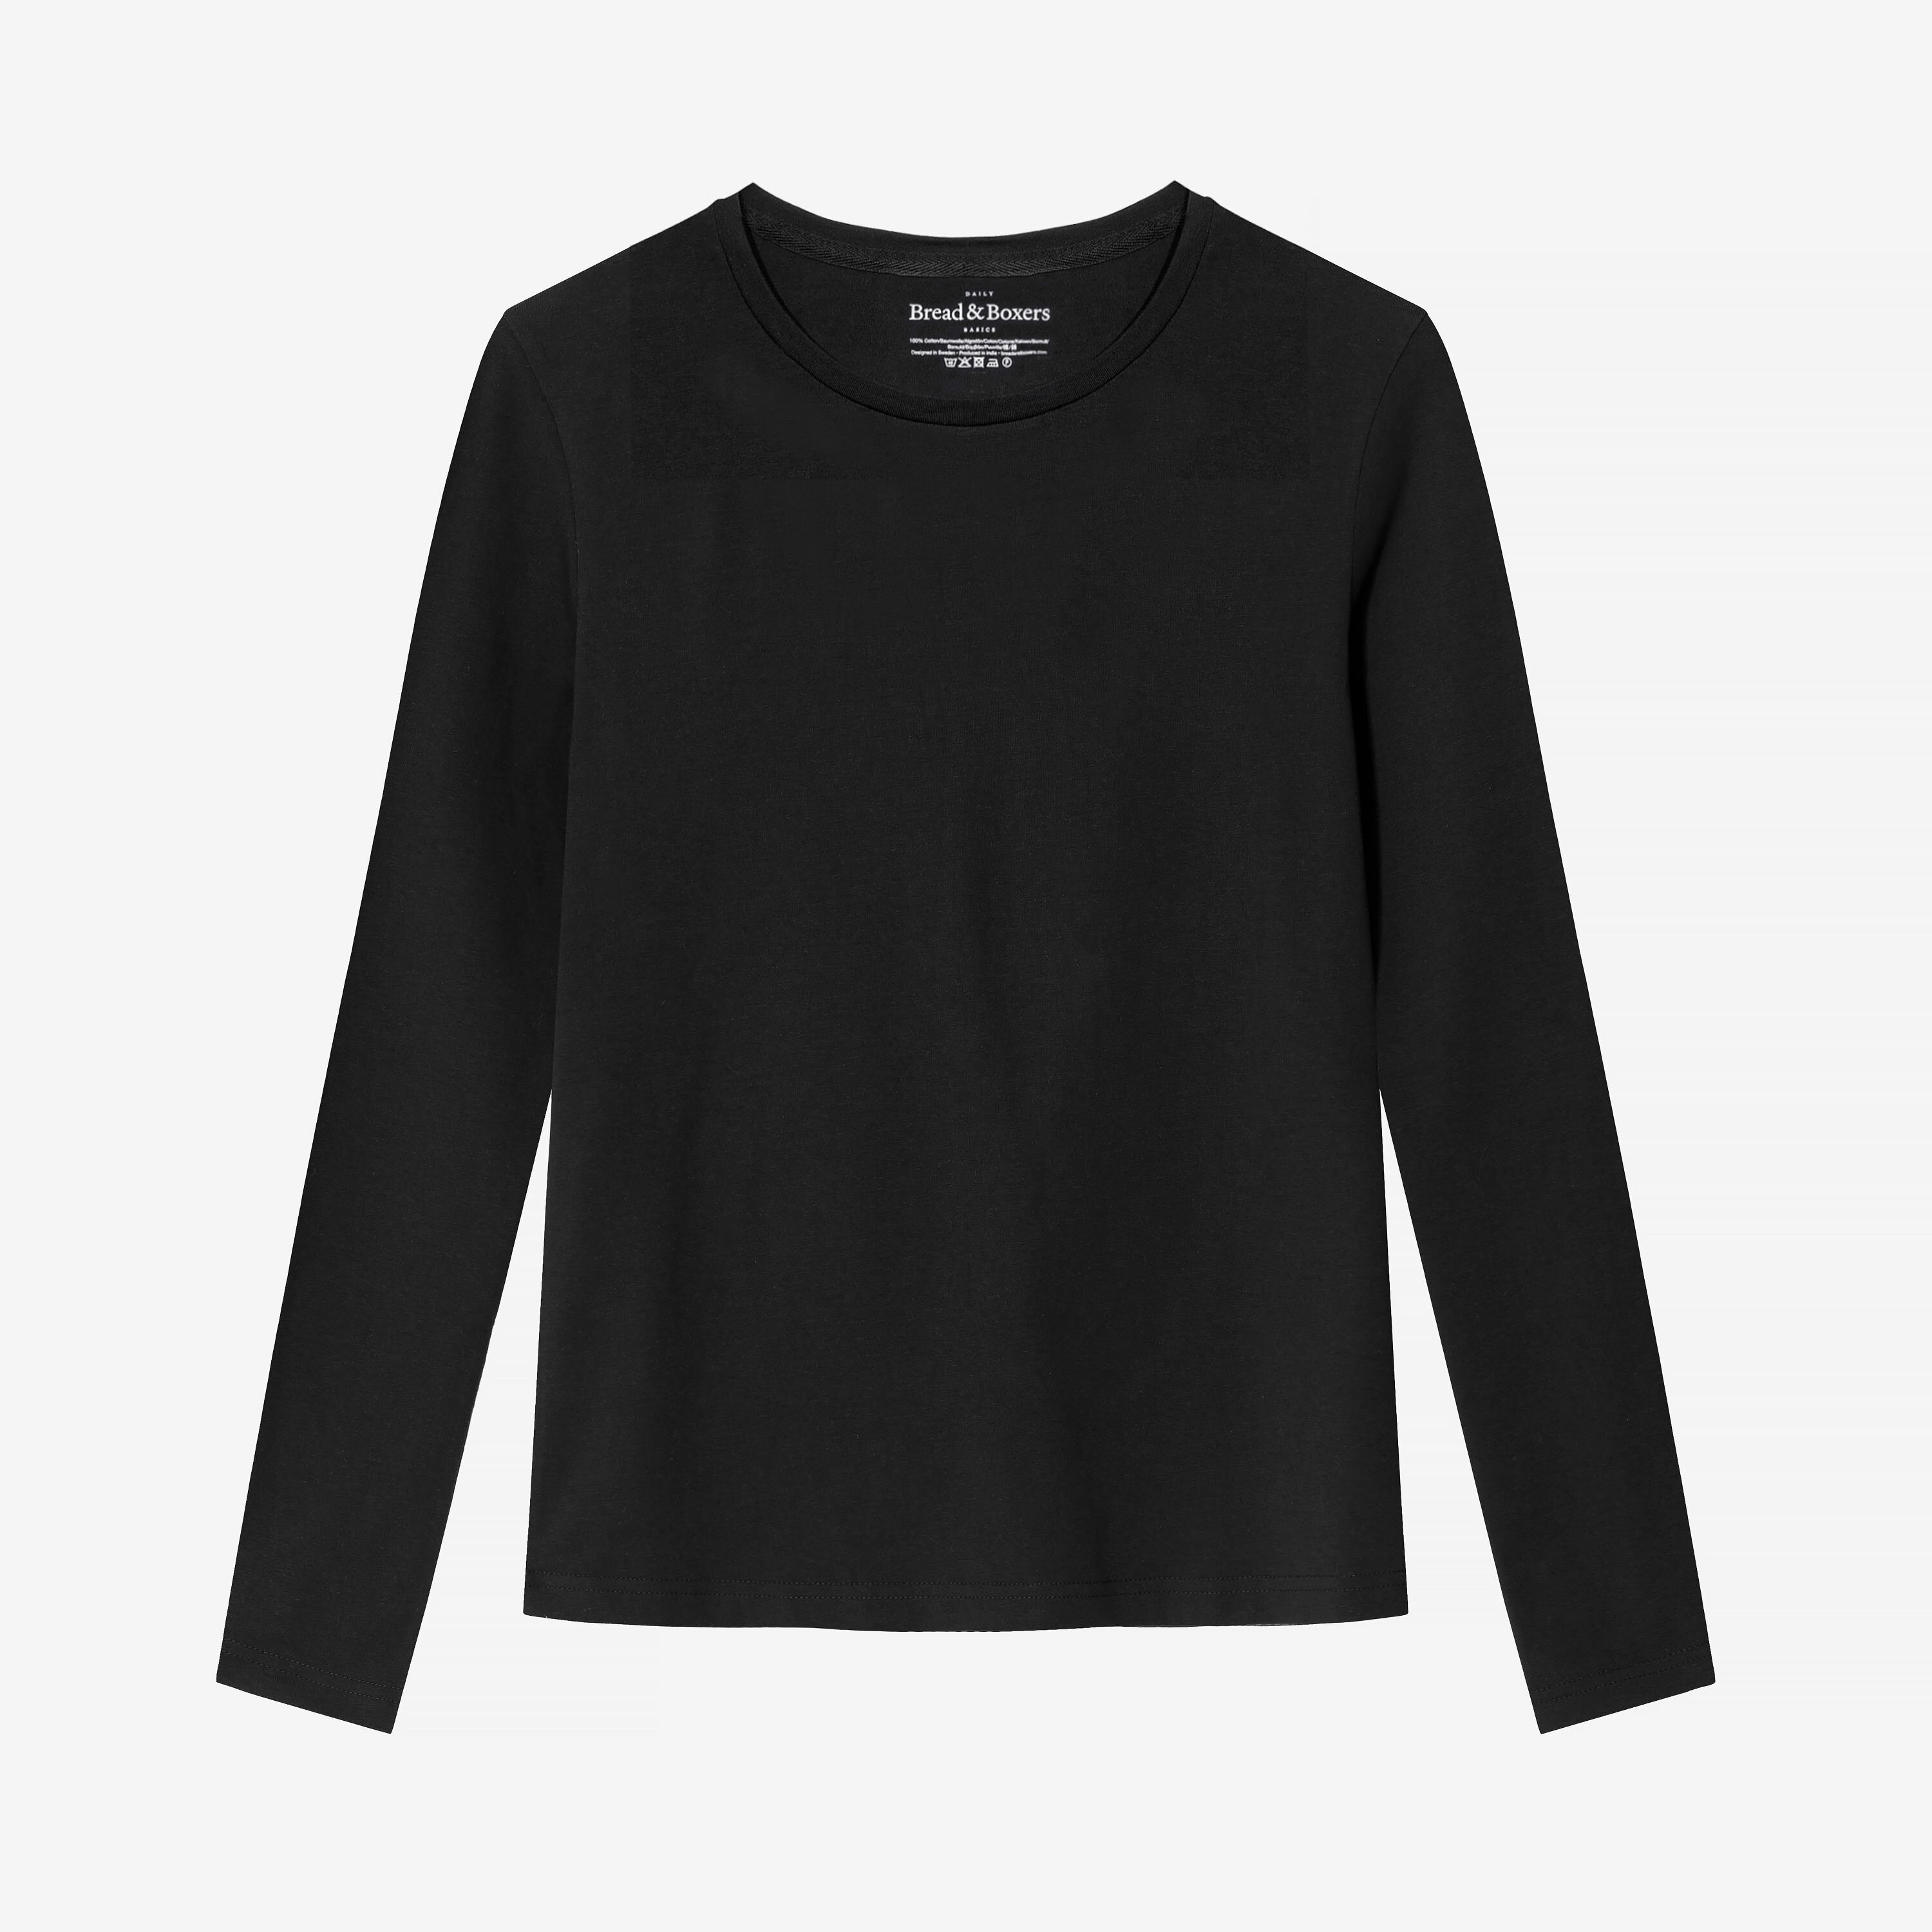 616-02_Long_Sleeve_black_CO-A